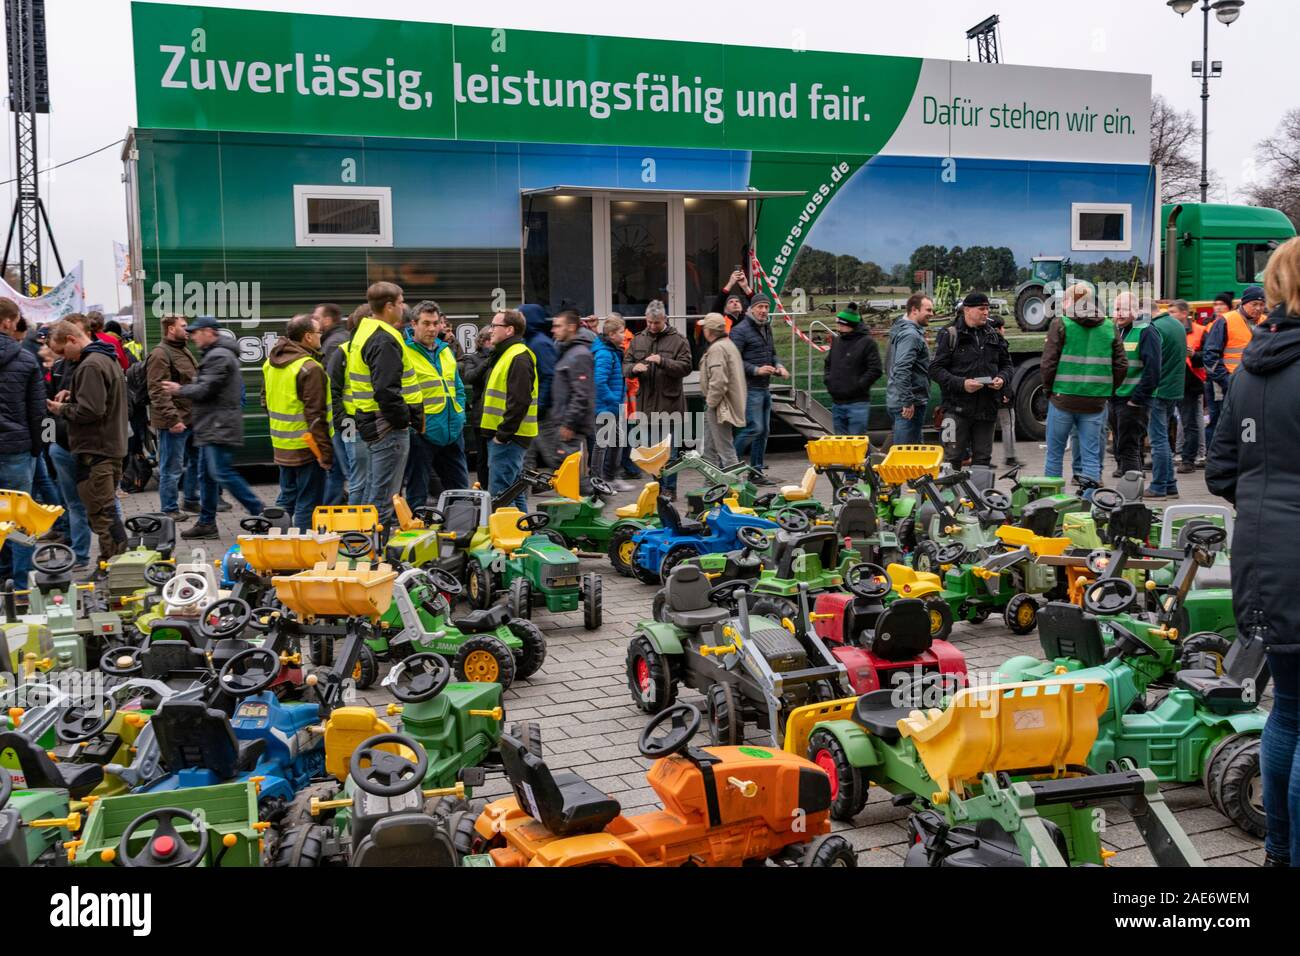 Germany, Brandenburg Gates, Berlin. 26/11/2019: An estimated 40,000 German farmers gathered at Brandenburg Tor in the centre of Berlin in protest against the governments new Agricultural Policy of Environmental Pretection combined with falling prices are damaging their businesses. Stock Photo